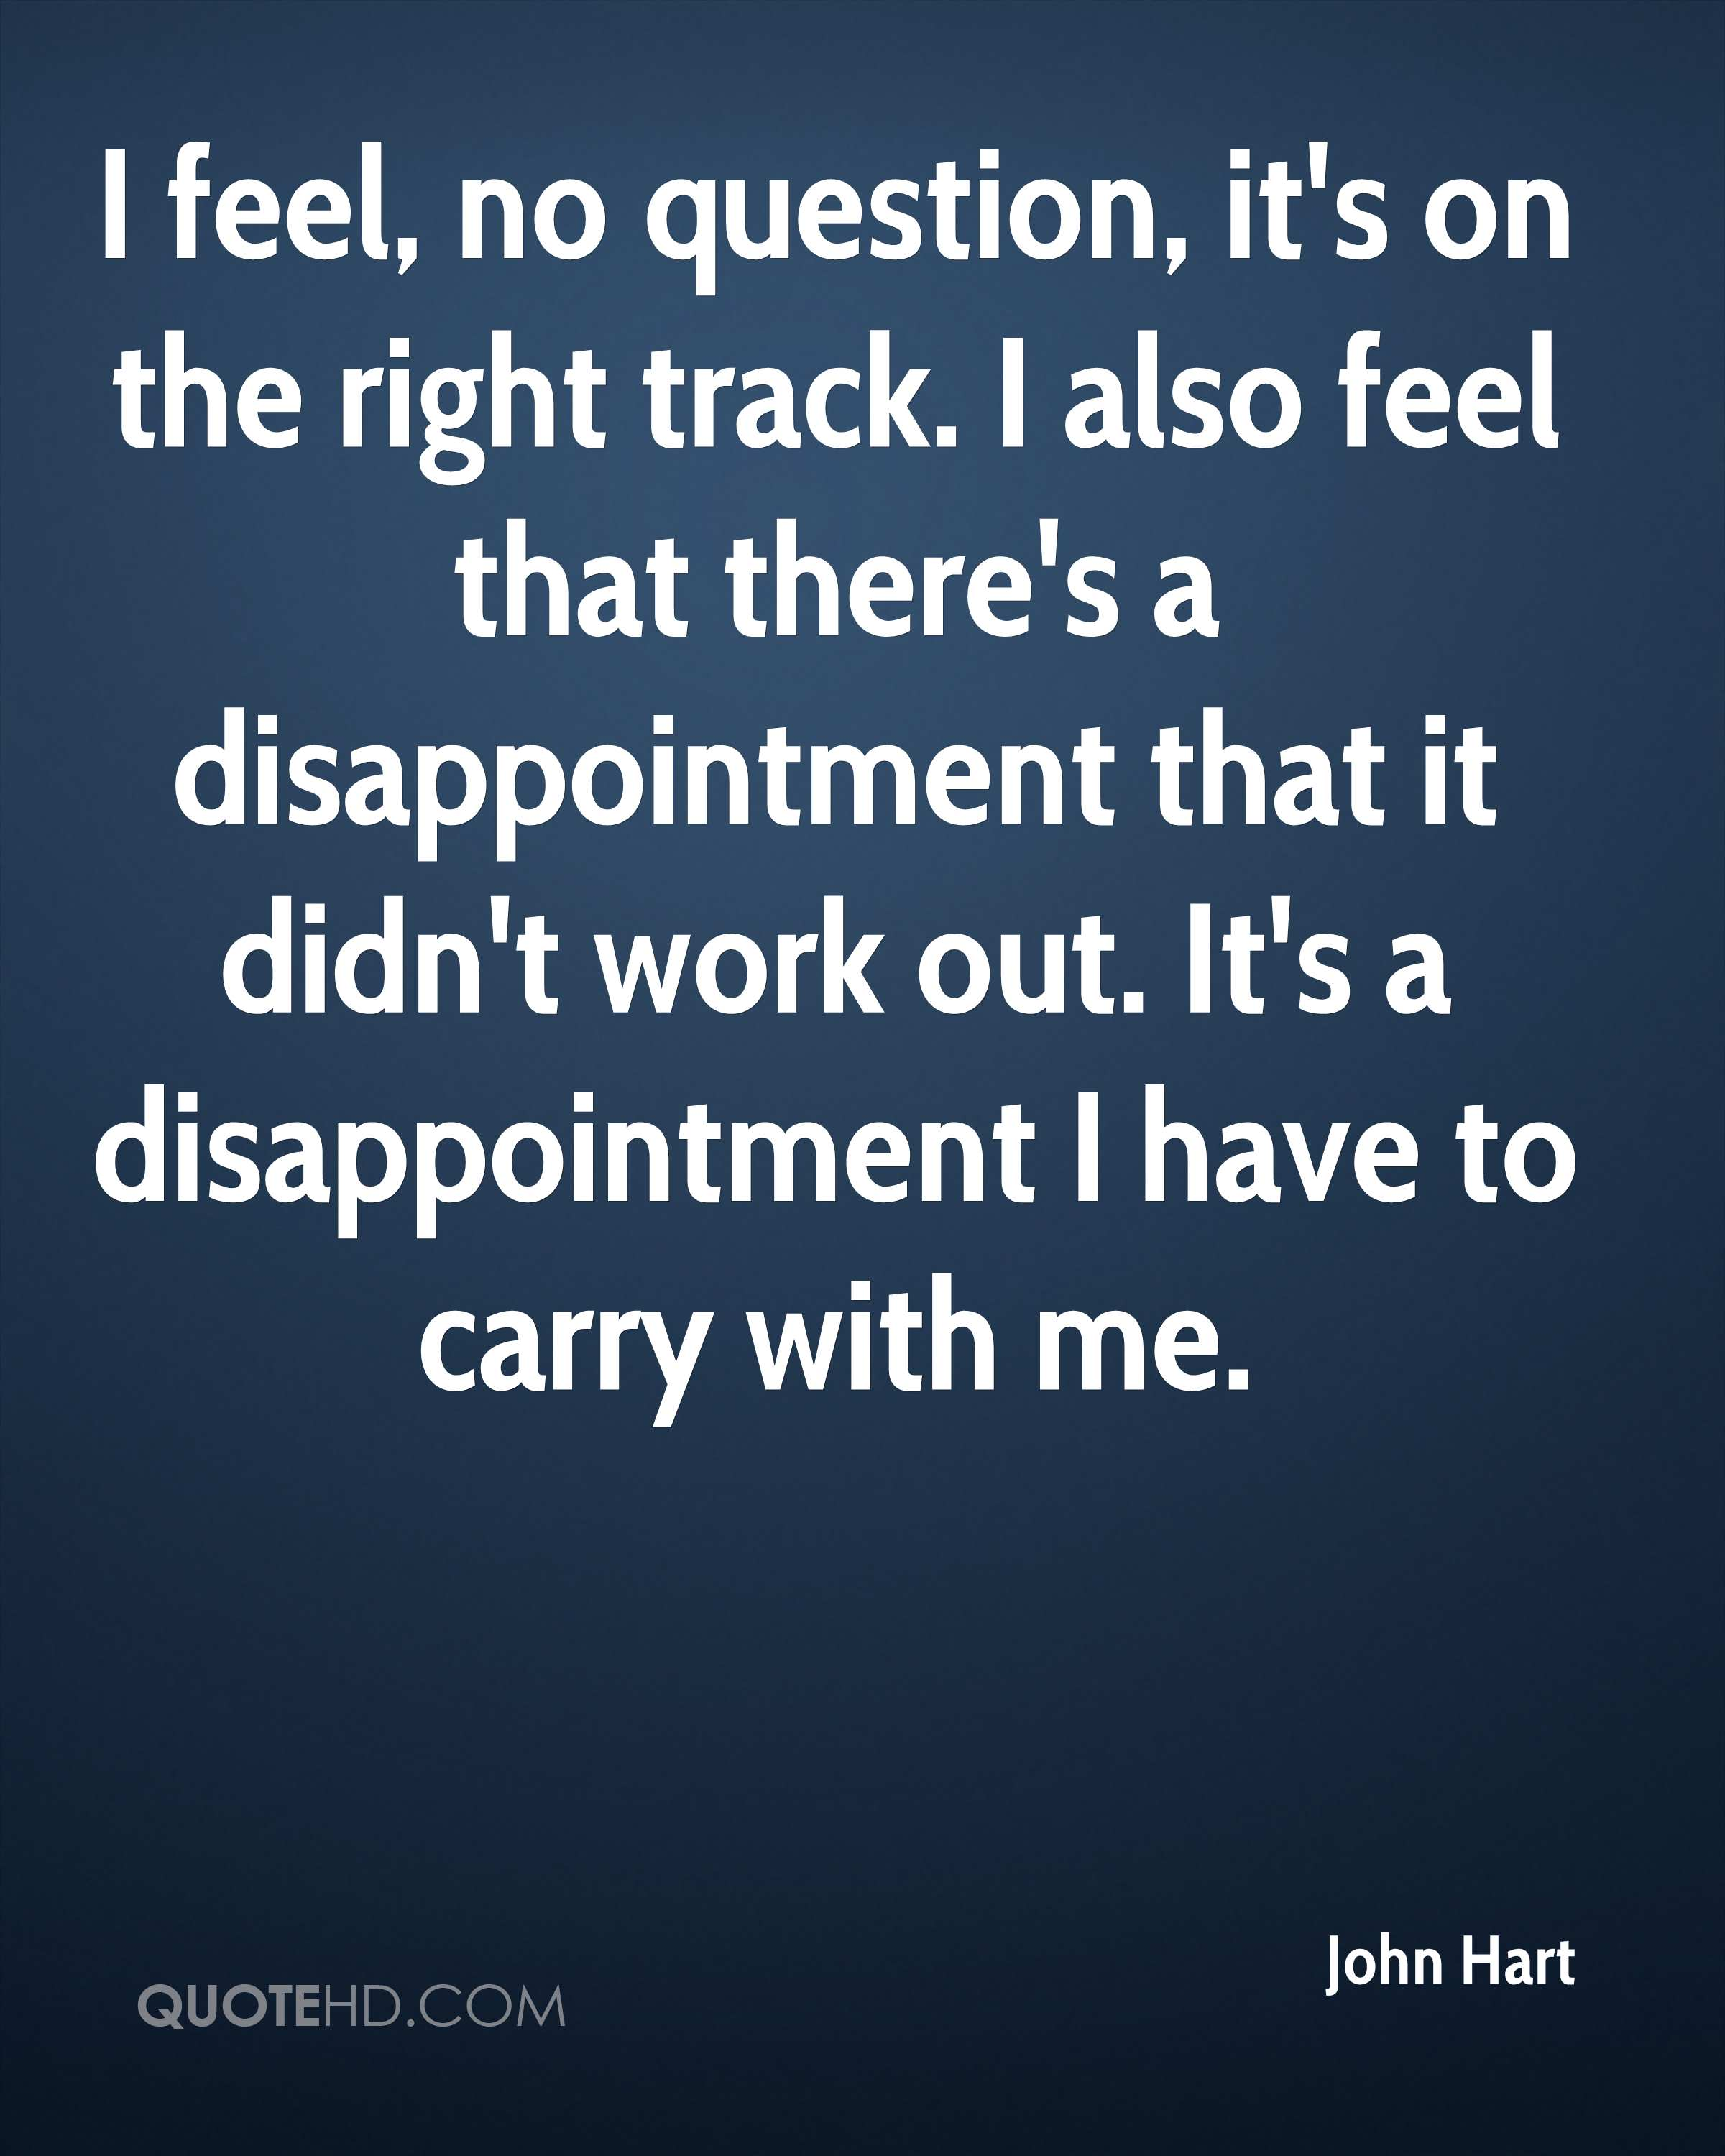 I feel, no question, it's on the right track. I also feel that there's a disappointment that it didn't work out. It's a disappointment I have to carry with me.